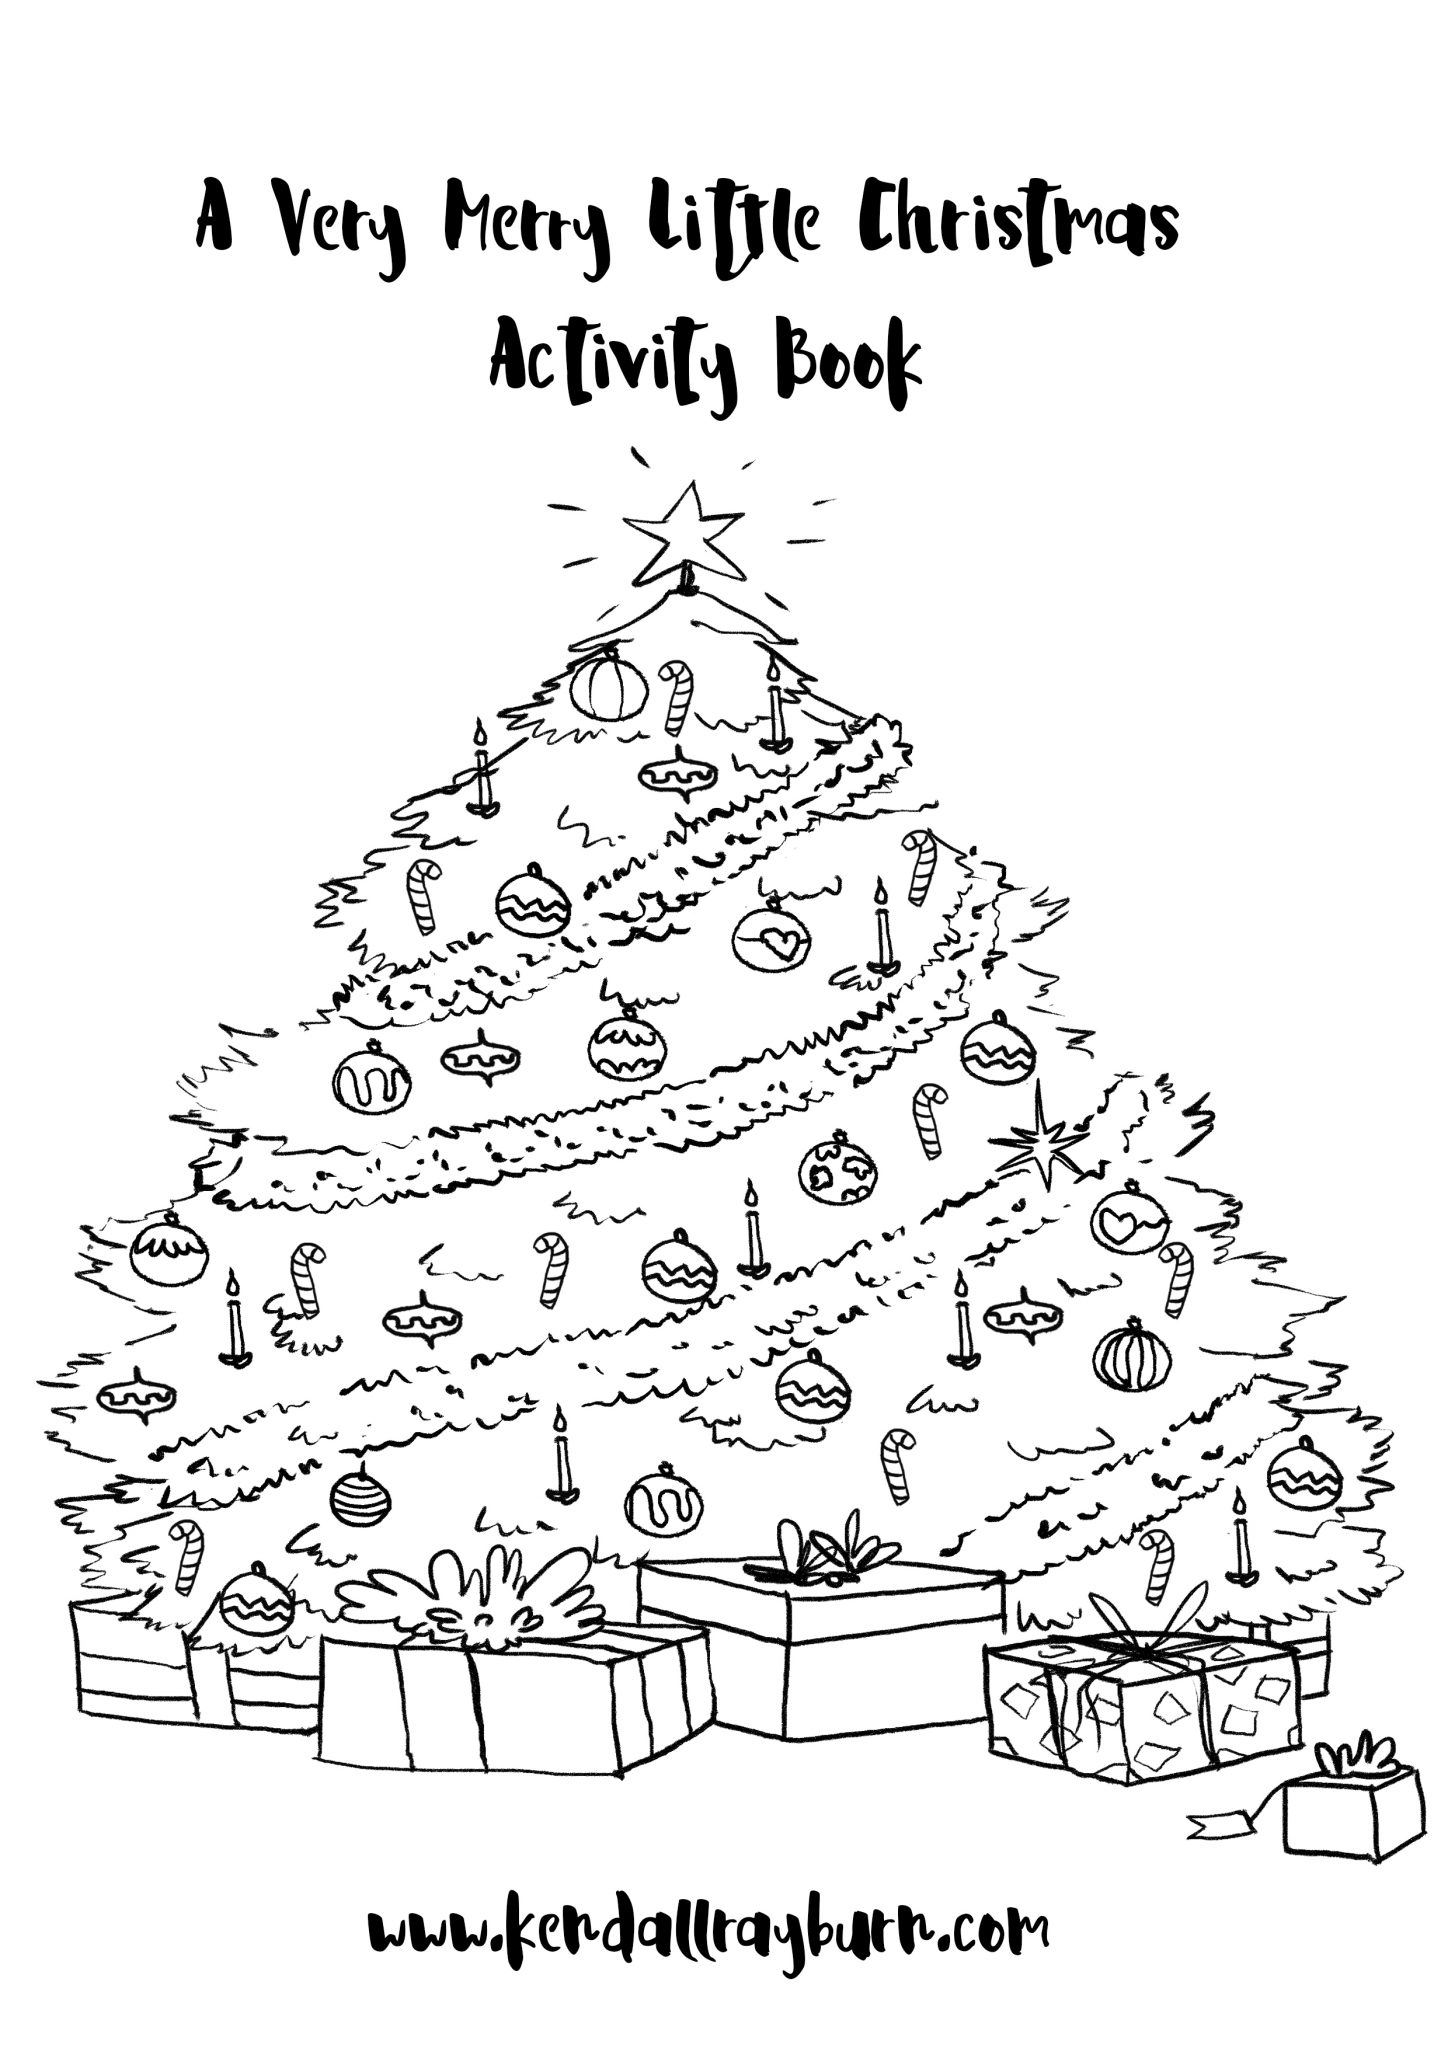 A Very Merry Little Christmas Printable Activity Book